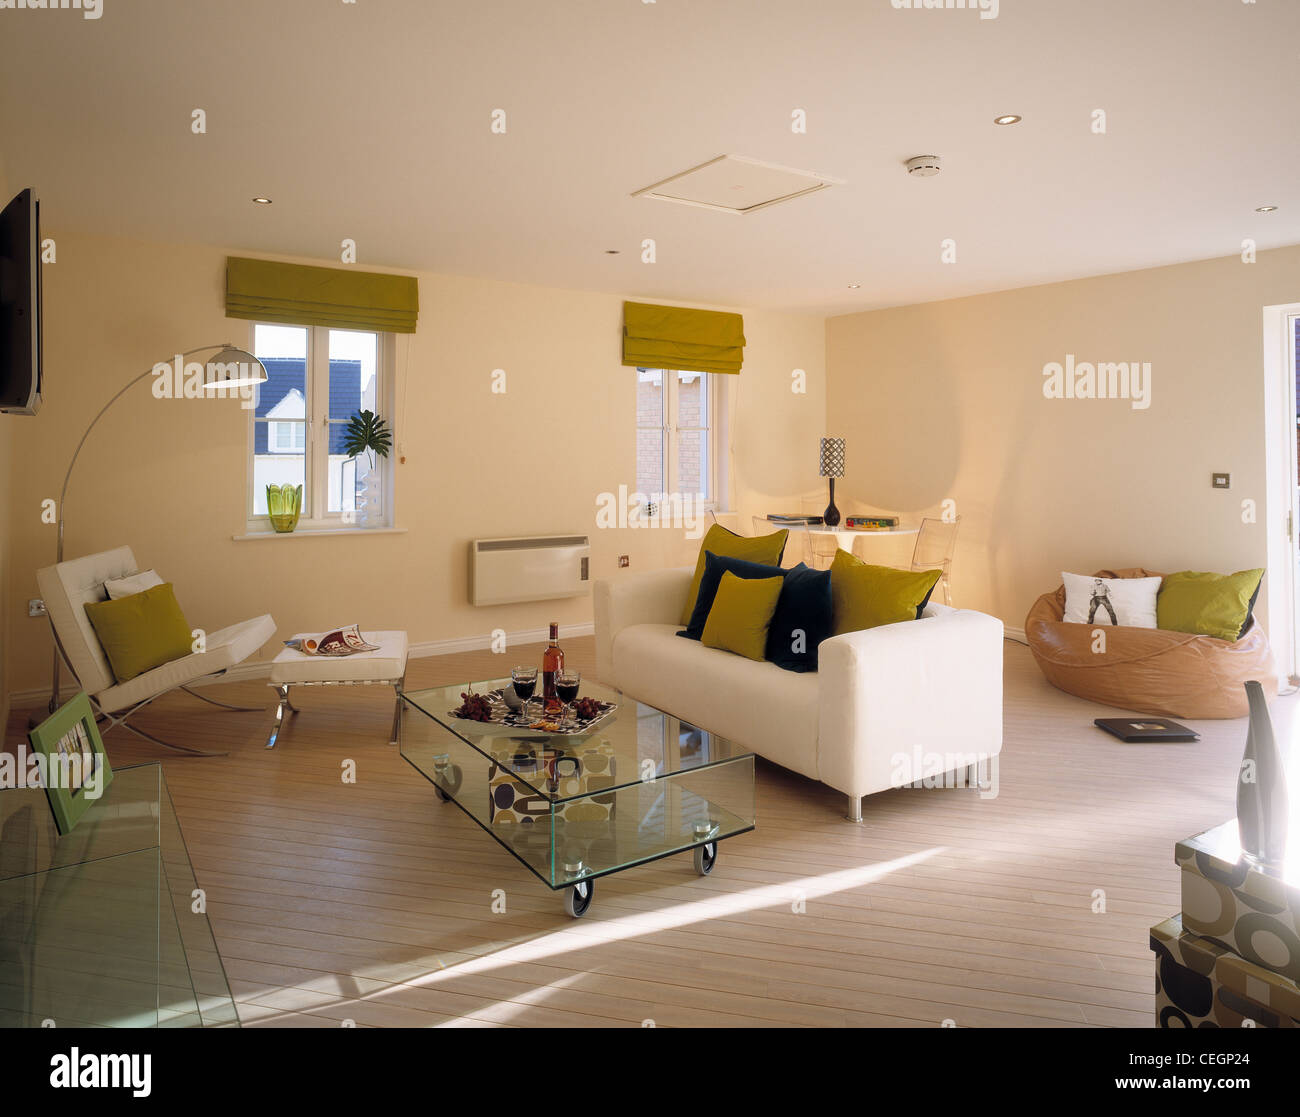 Interior view of lounge. - Stock Image